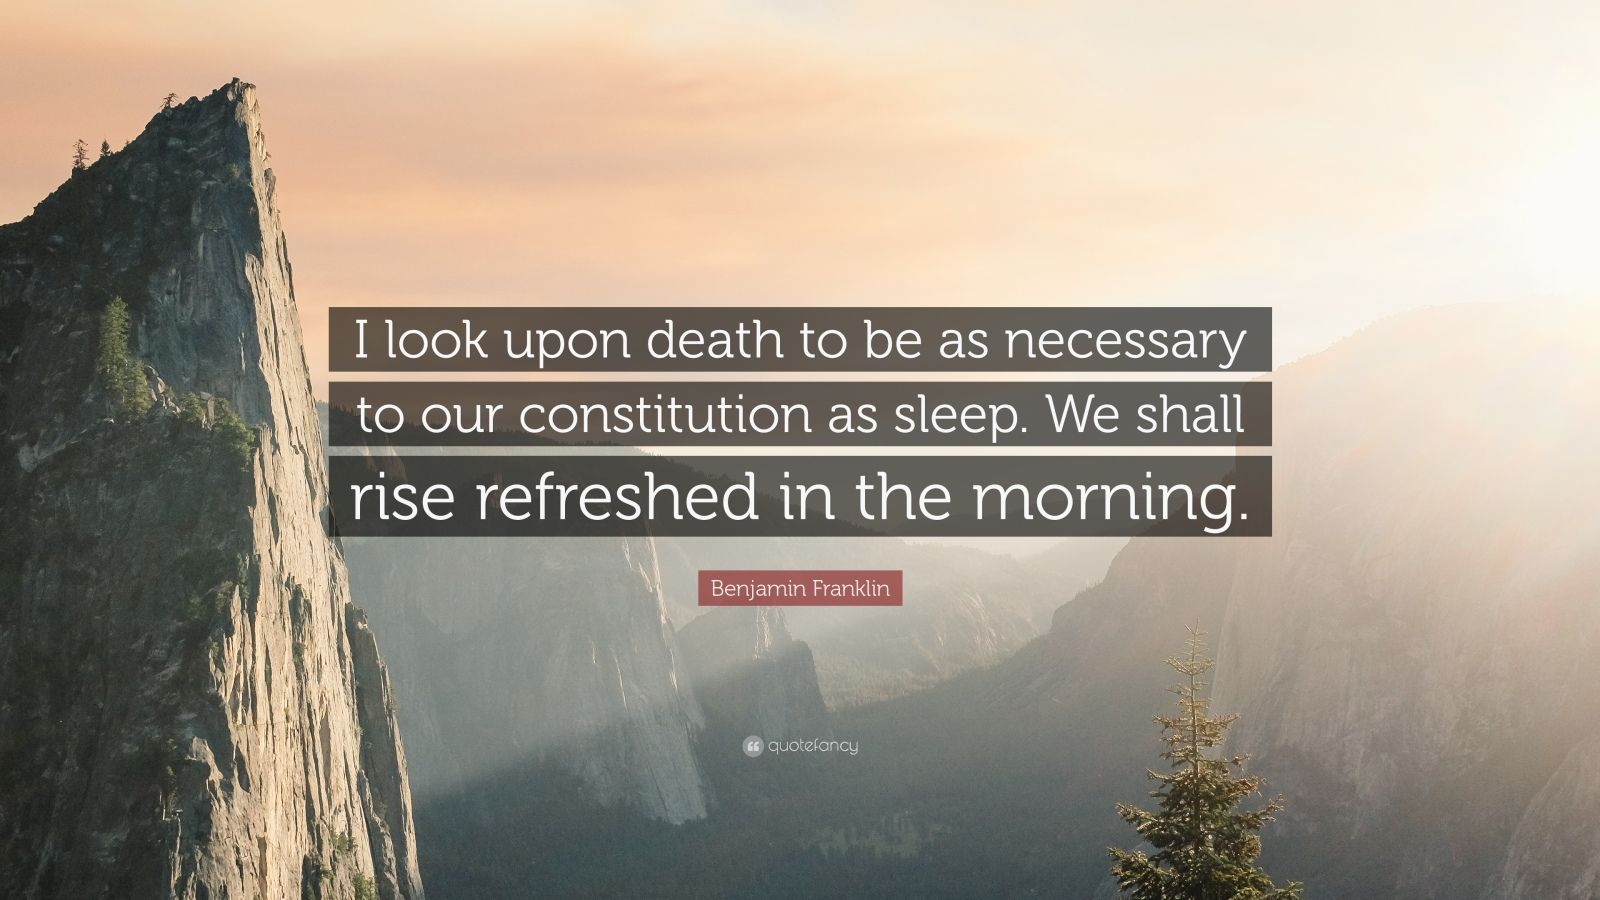 """Benjamin Franklin Quote: """"I look upon death to be as necessary to our constitution as sleep. We shall rise refreshed in the morning."""""""